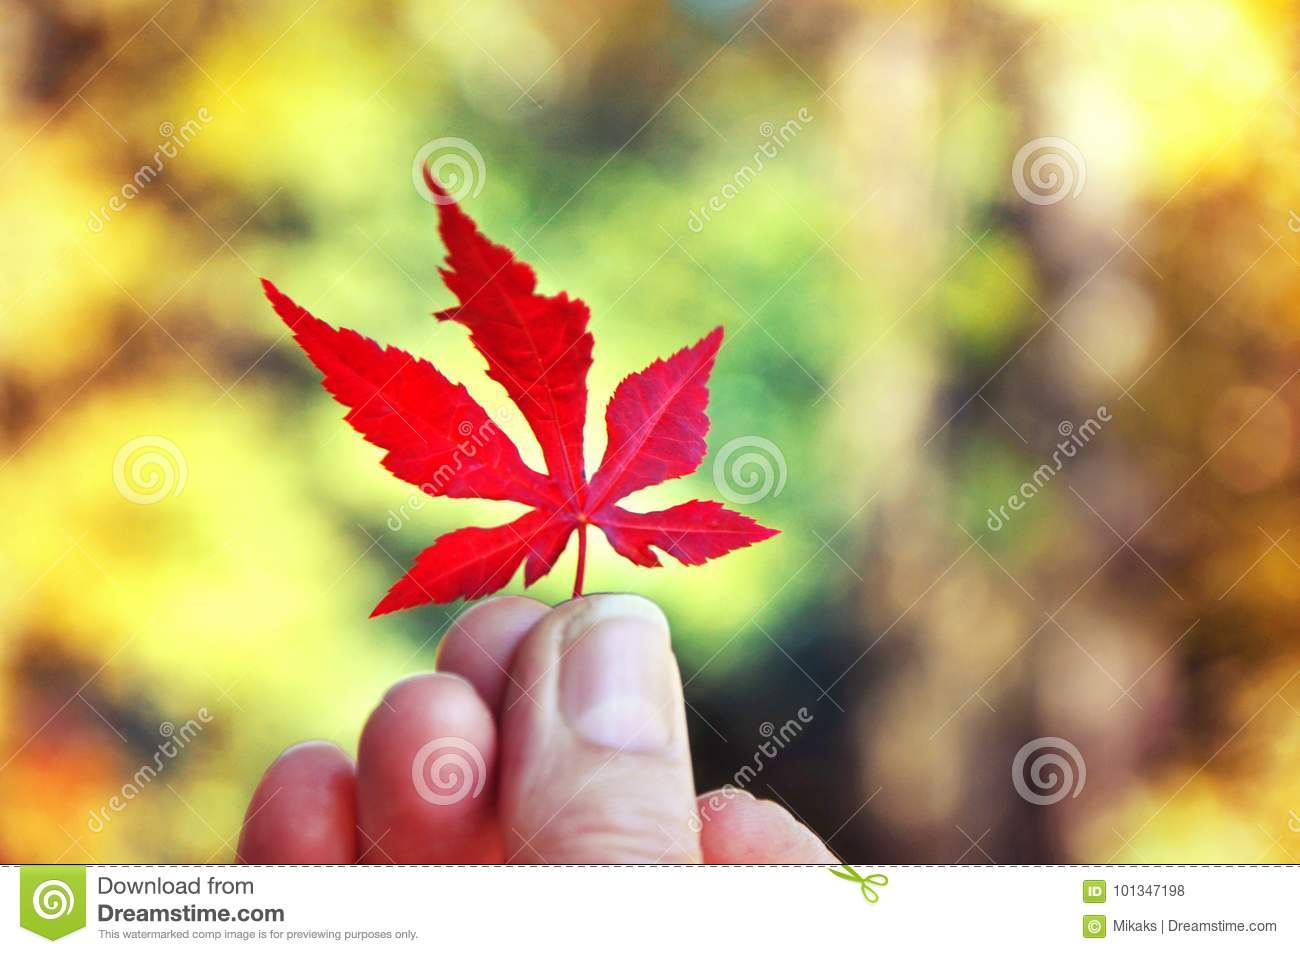 Hand Holding Red Leaf On Autumn Yellow Sunny Background